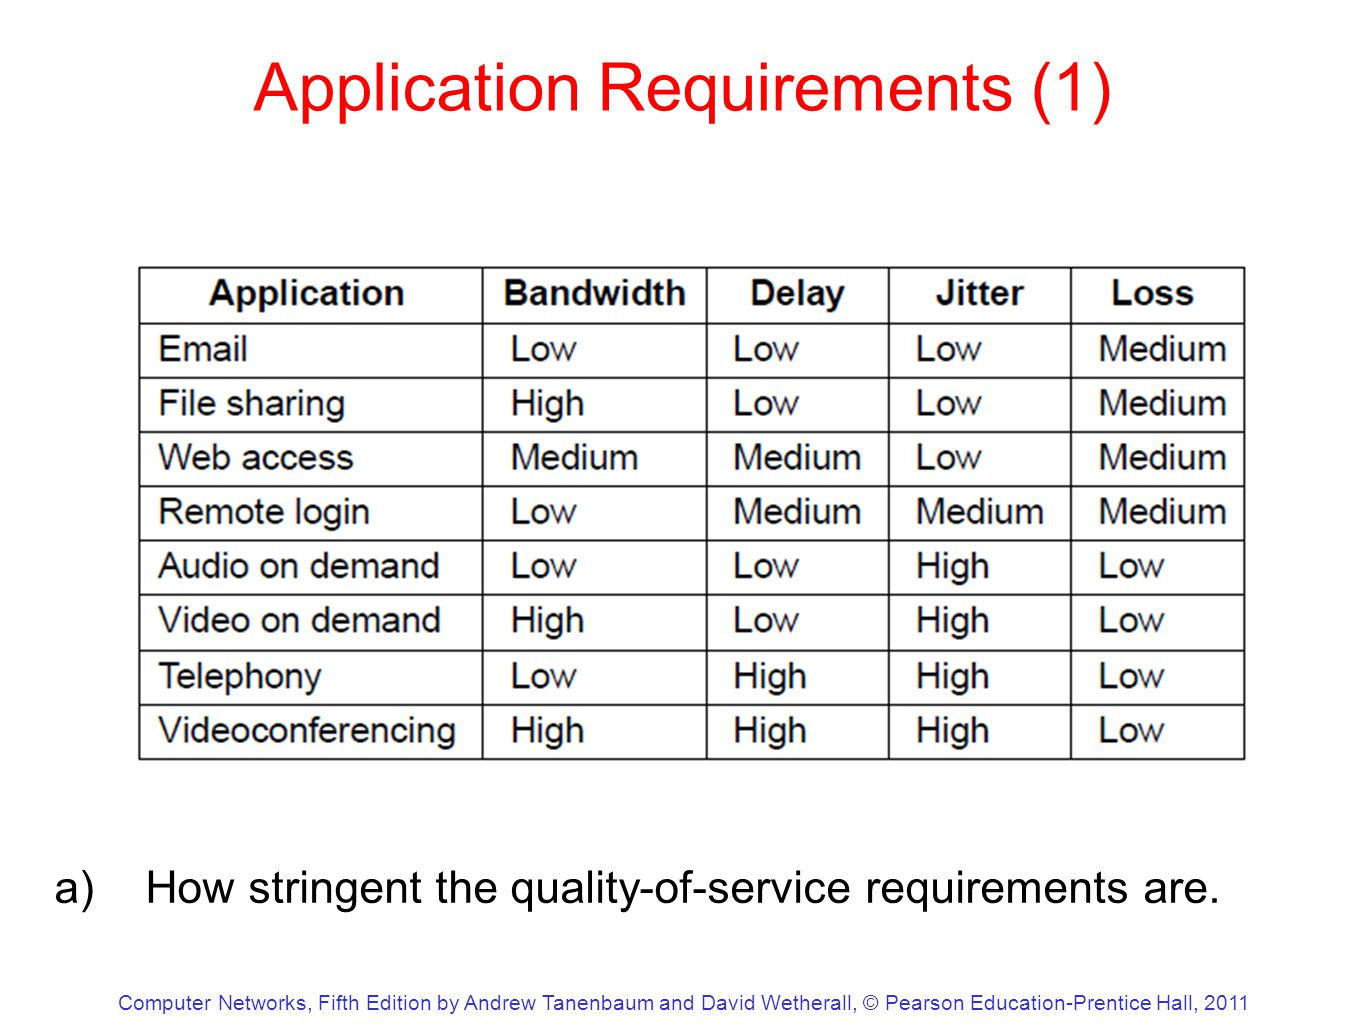 Computer Networks, Fifth Edition by Andrew Tanenbaum and David Wetherall, © Pearson Education-Prentice Hall, 2011 Application Requirements (1) a)How stringent the quality-of-service requirements are.